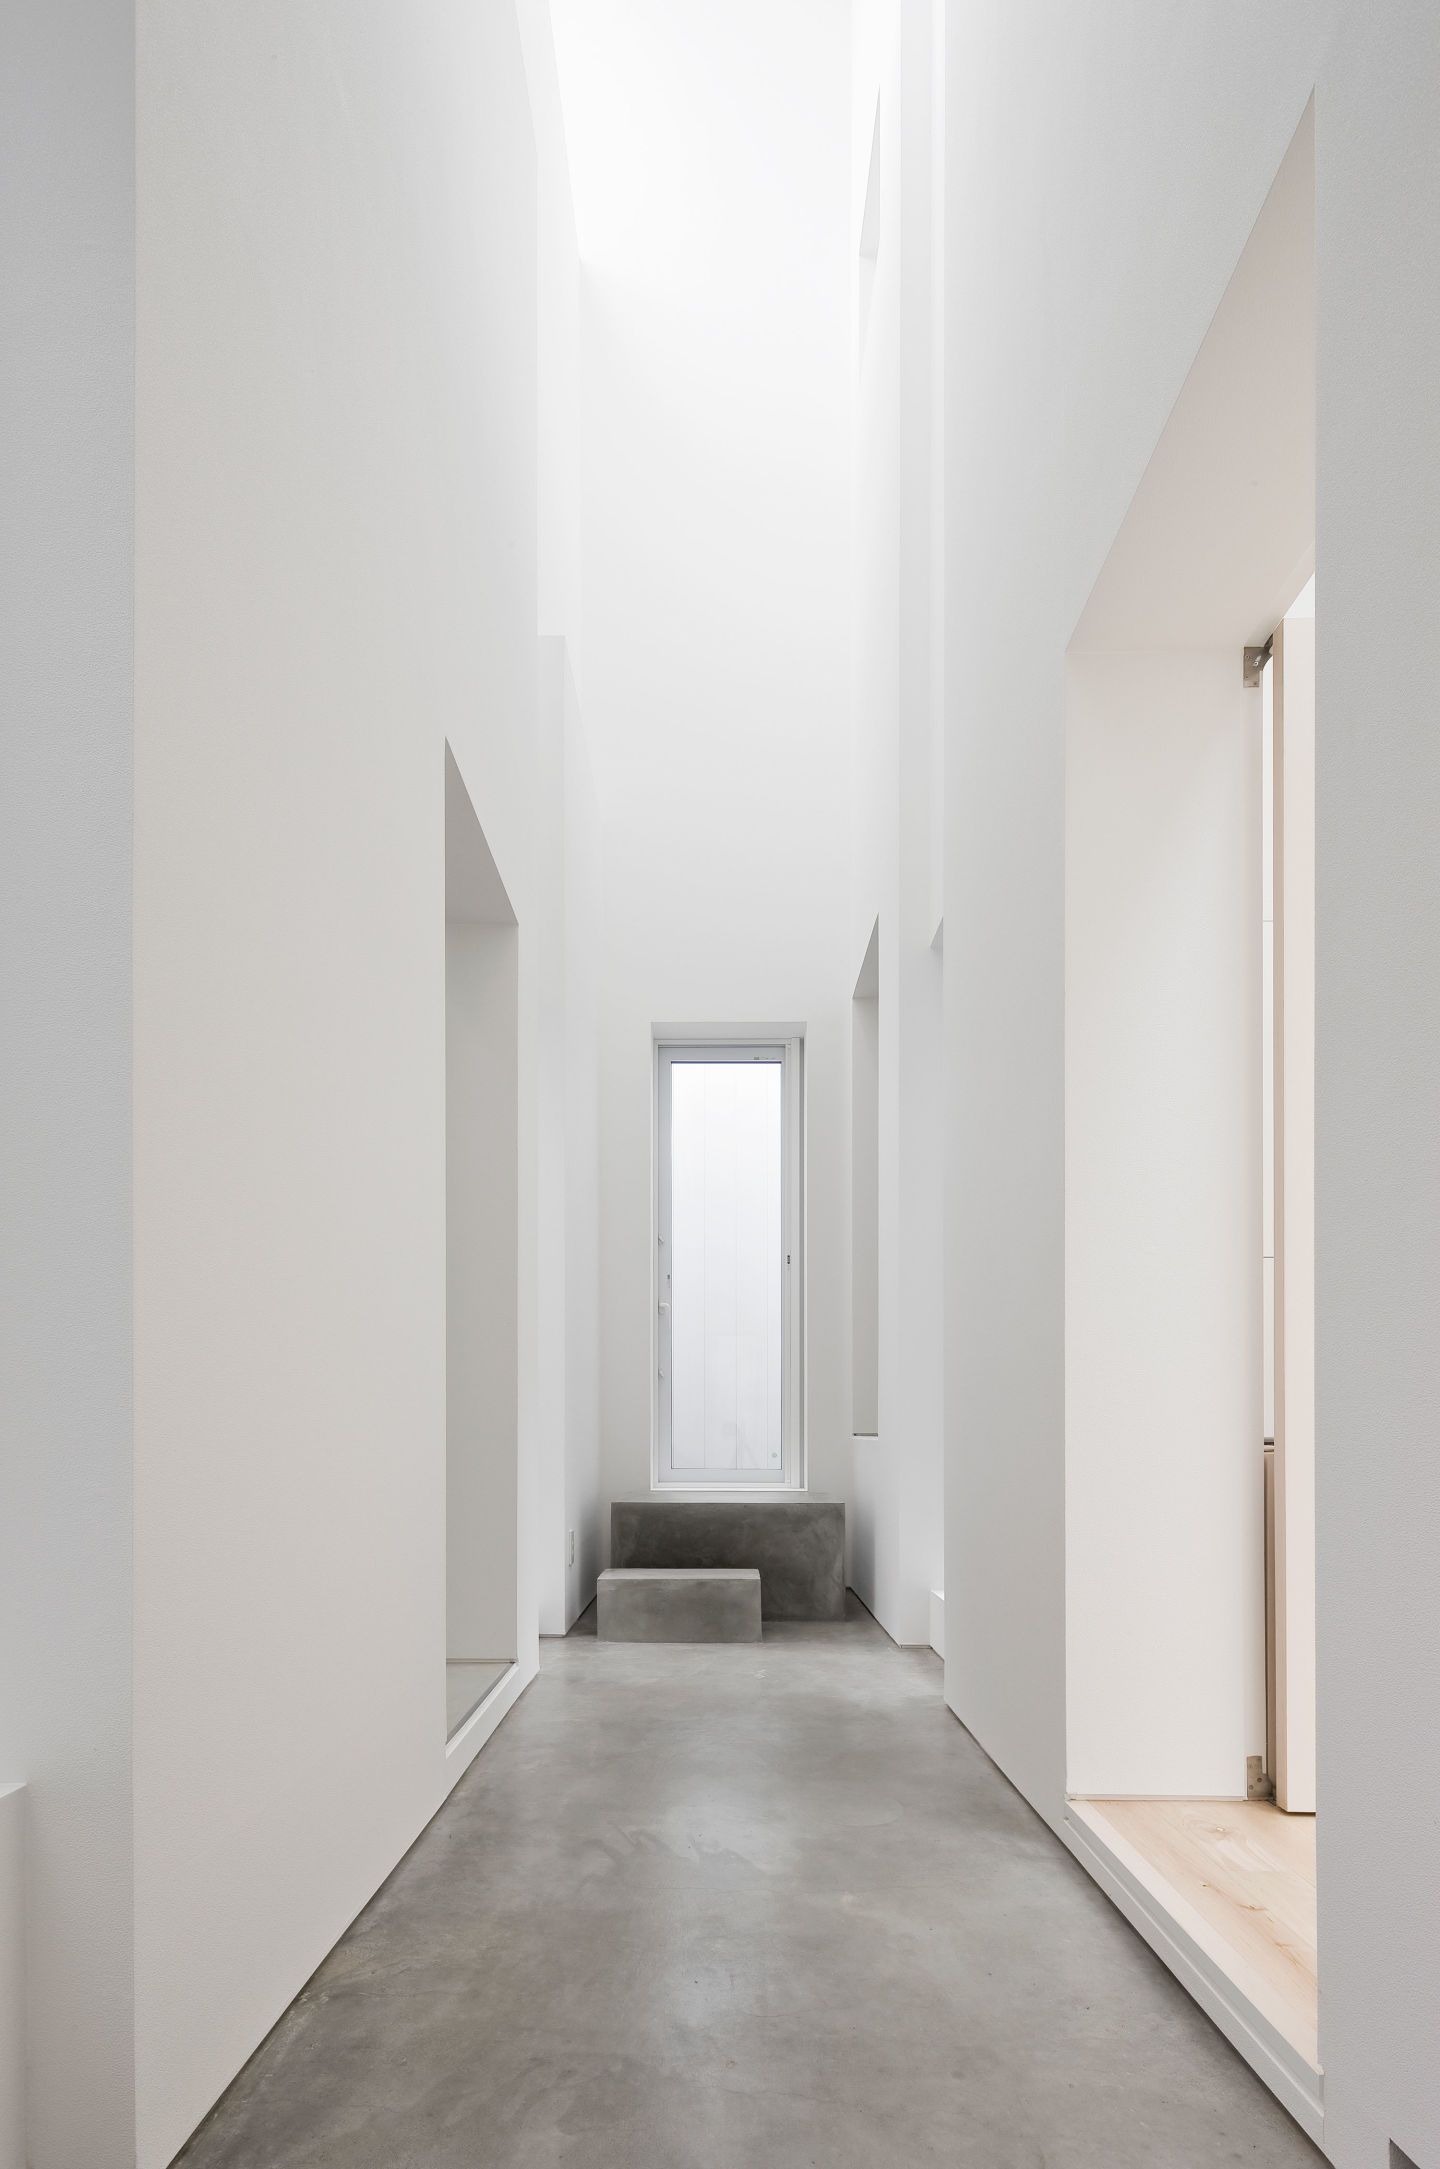 Architecture studio Jun Igarashi stunns us every time. Pure, all white facade of this house located in central zone of the city in Hokkaido, plays in tune with interior - wooden floors and white walls are everything you need to create a unique space fo...